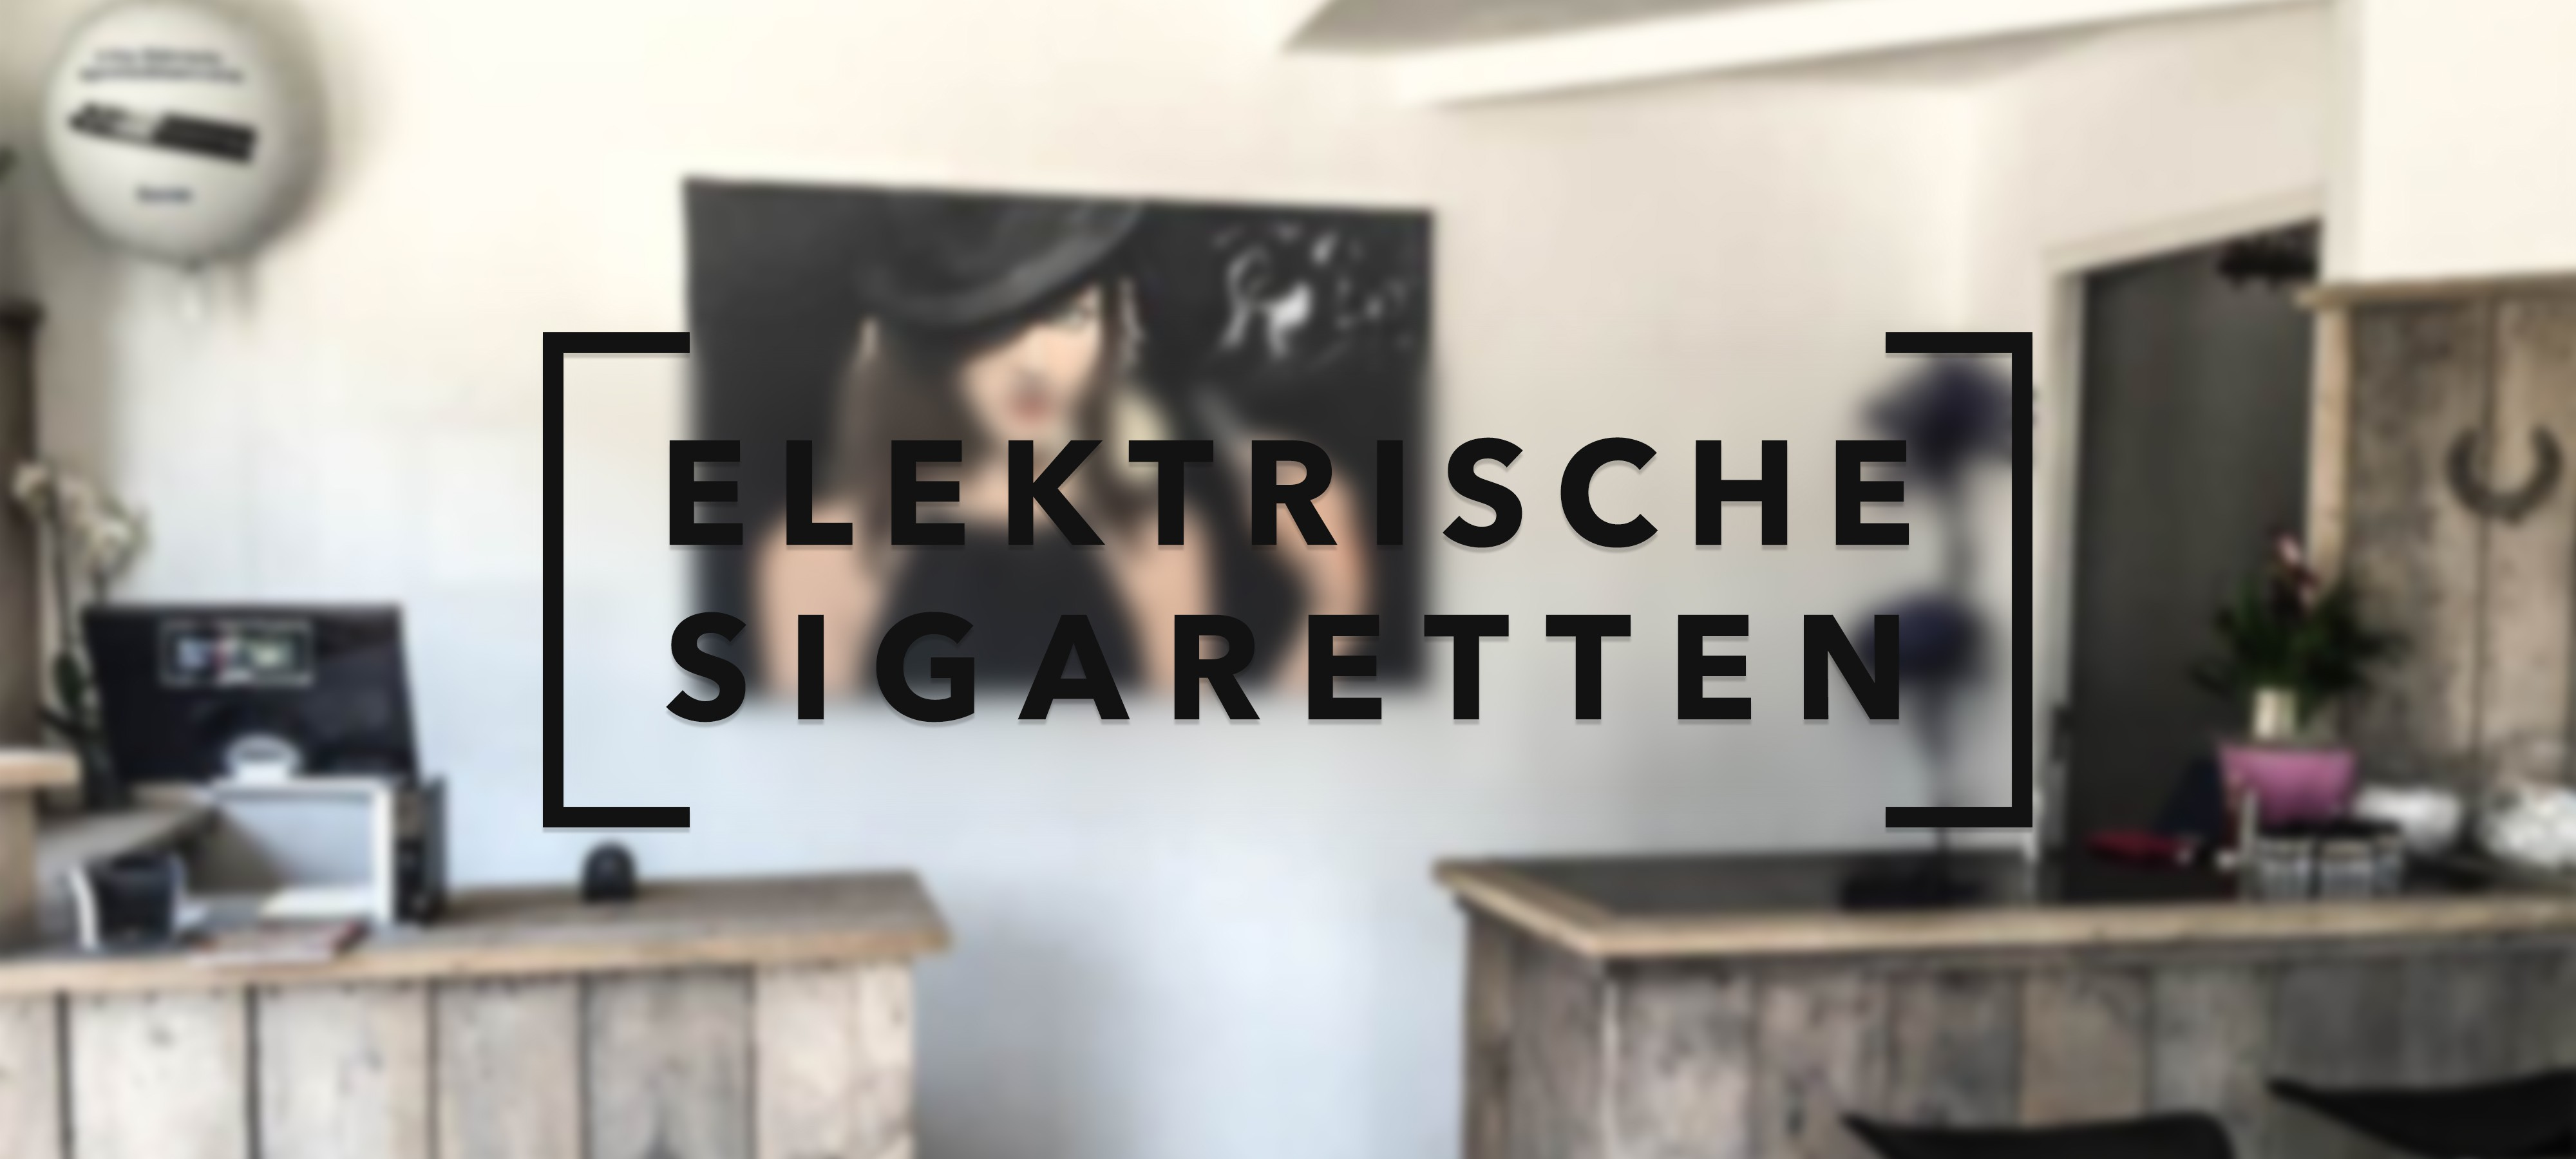 Header E-Way the best way - Elektrische sigaretten Oud-Turnhout